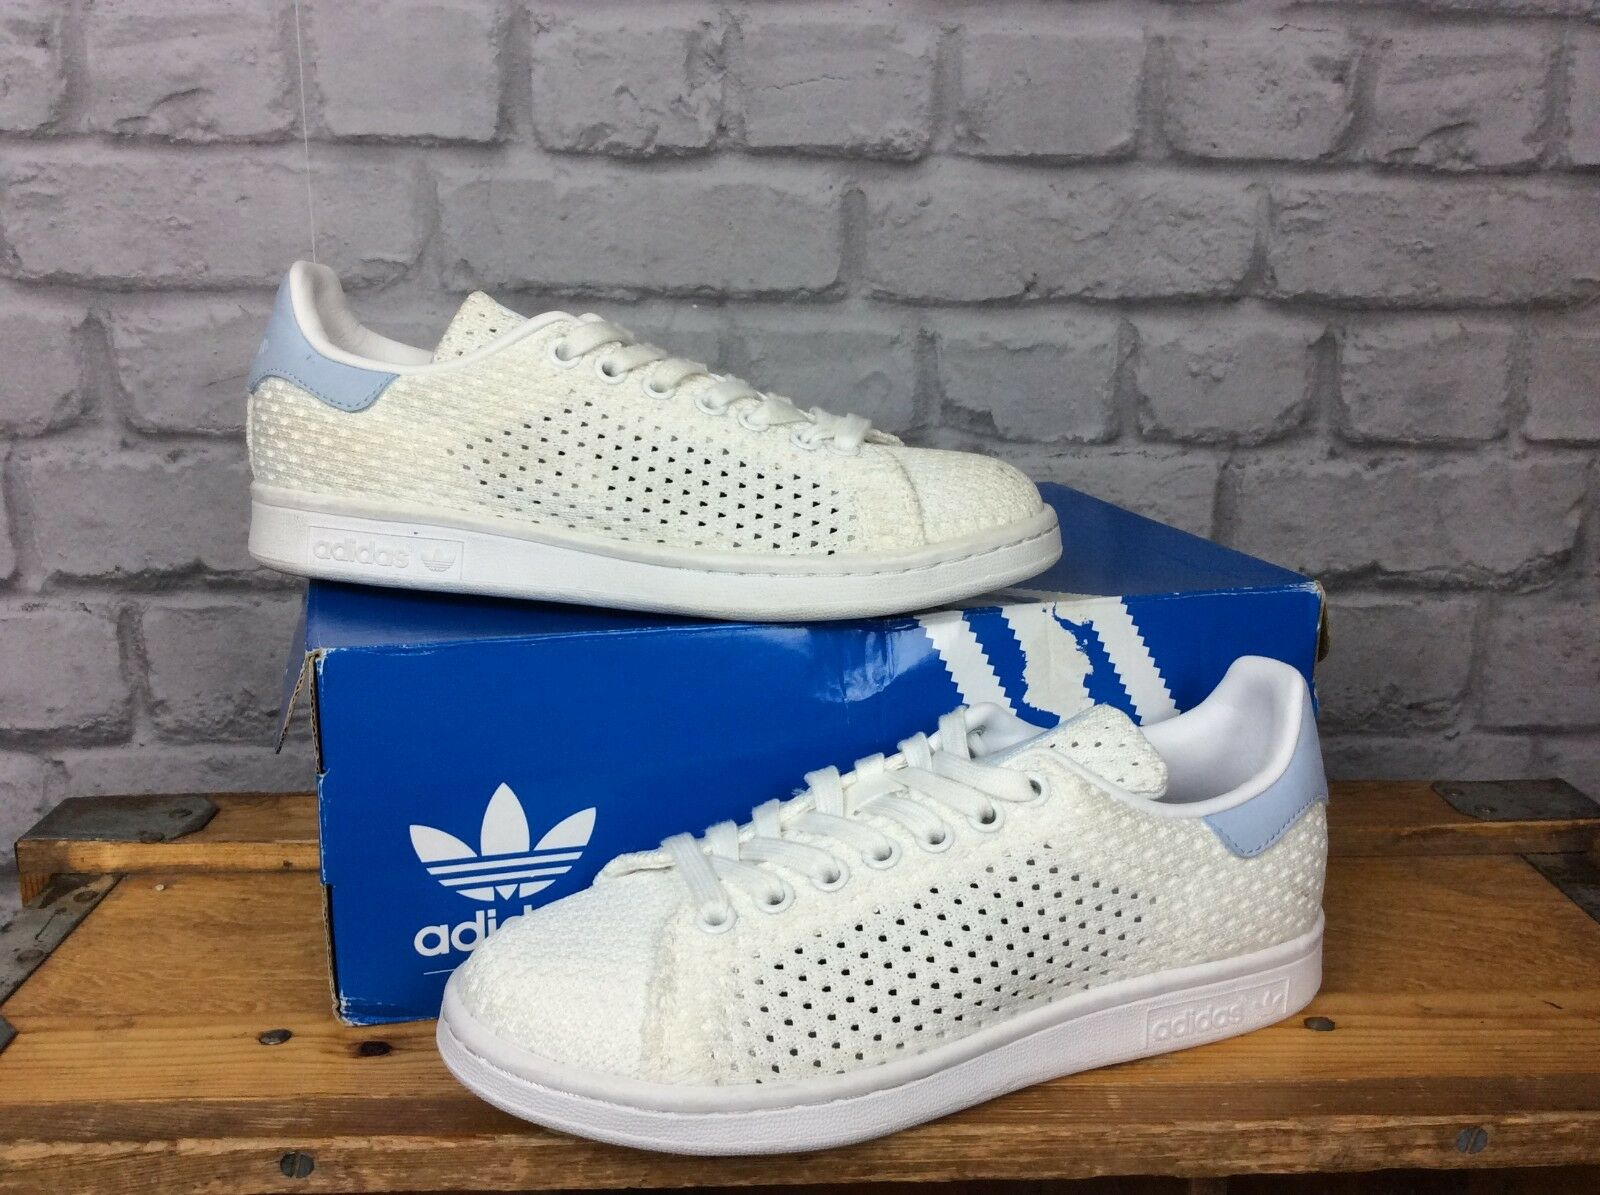 ADIDAS ORIGINALS LADIES UK 5 EU 38 WHITE BABY blueE STAN SMITH KNIT MESH TRAINERS